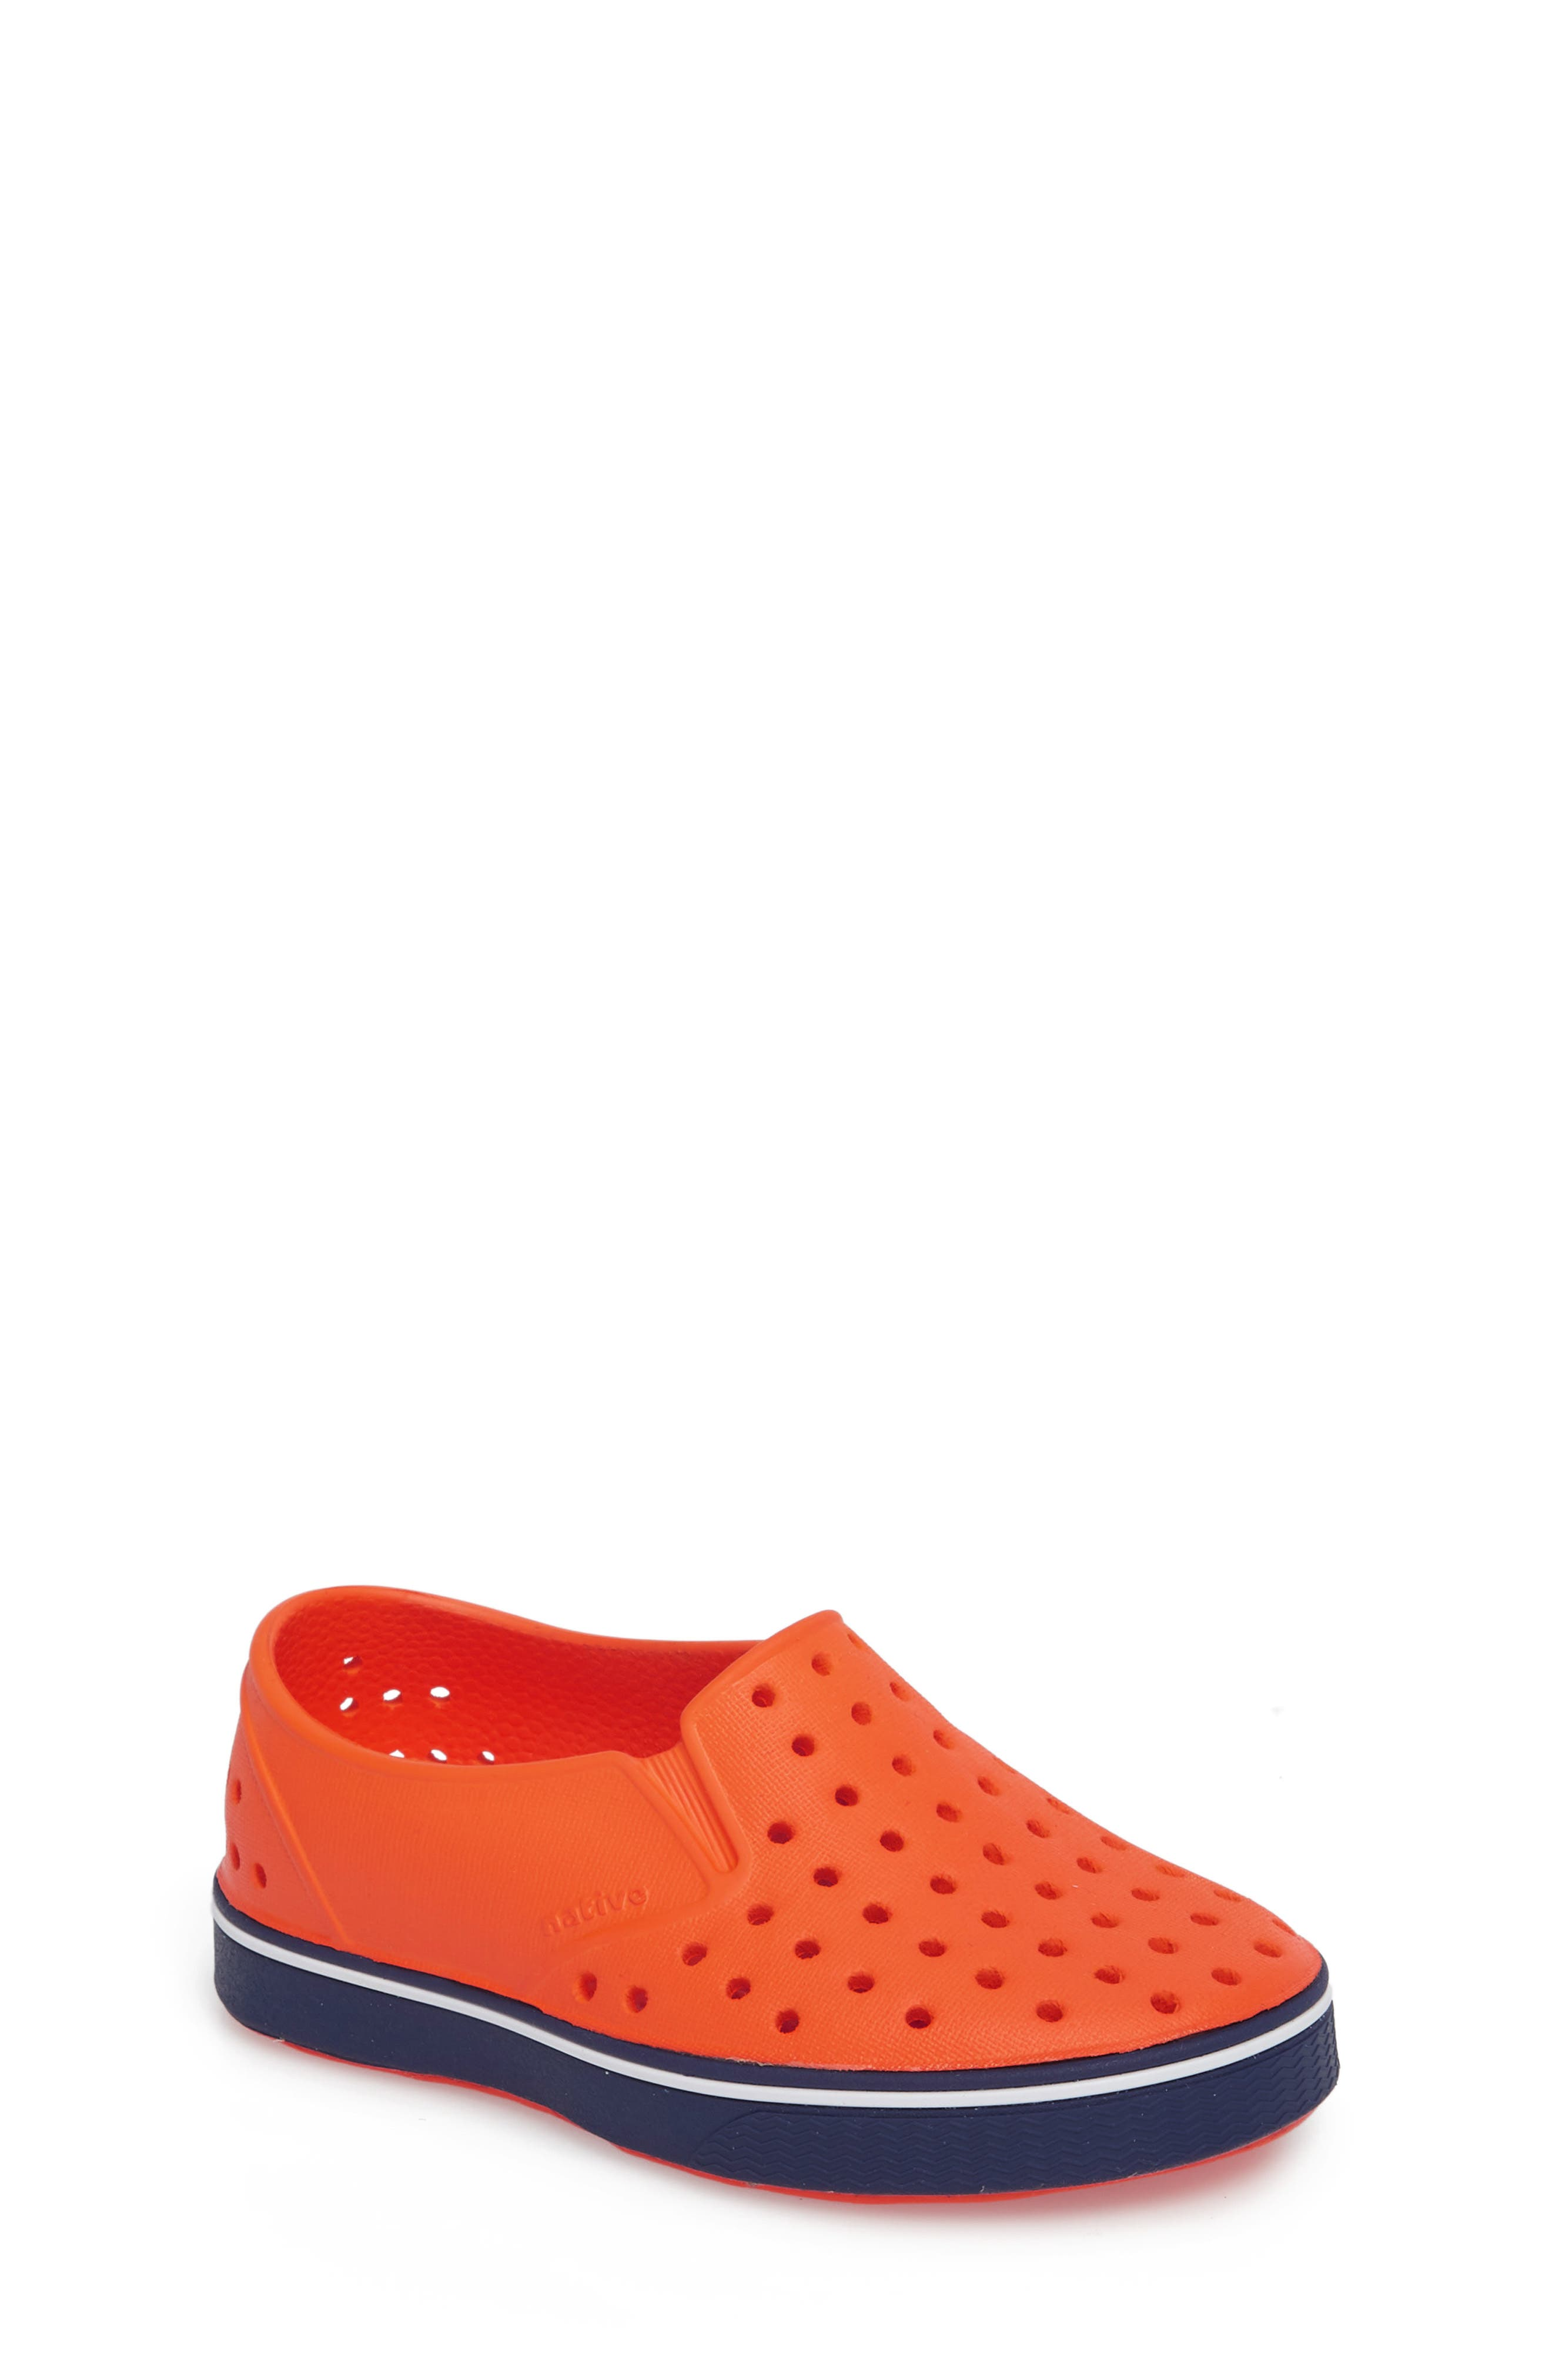 Miles Water Friendly Slip-On Sneaker,                         Main,                         color, SUNSET ORANGE/ REGATTA BLUE